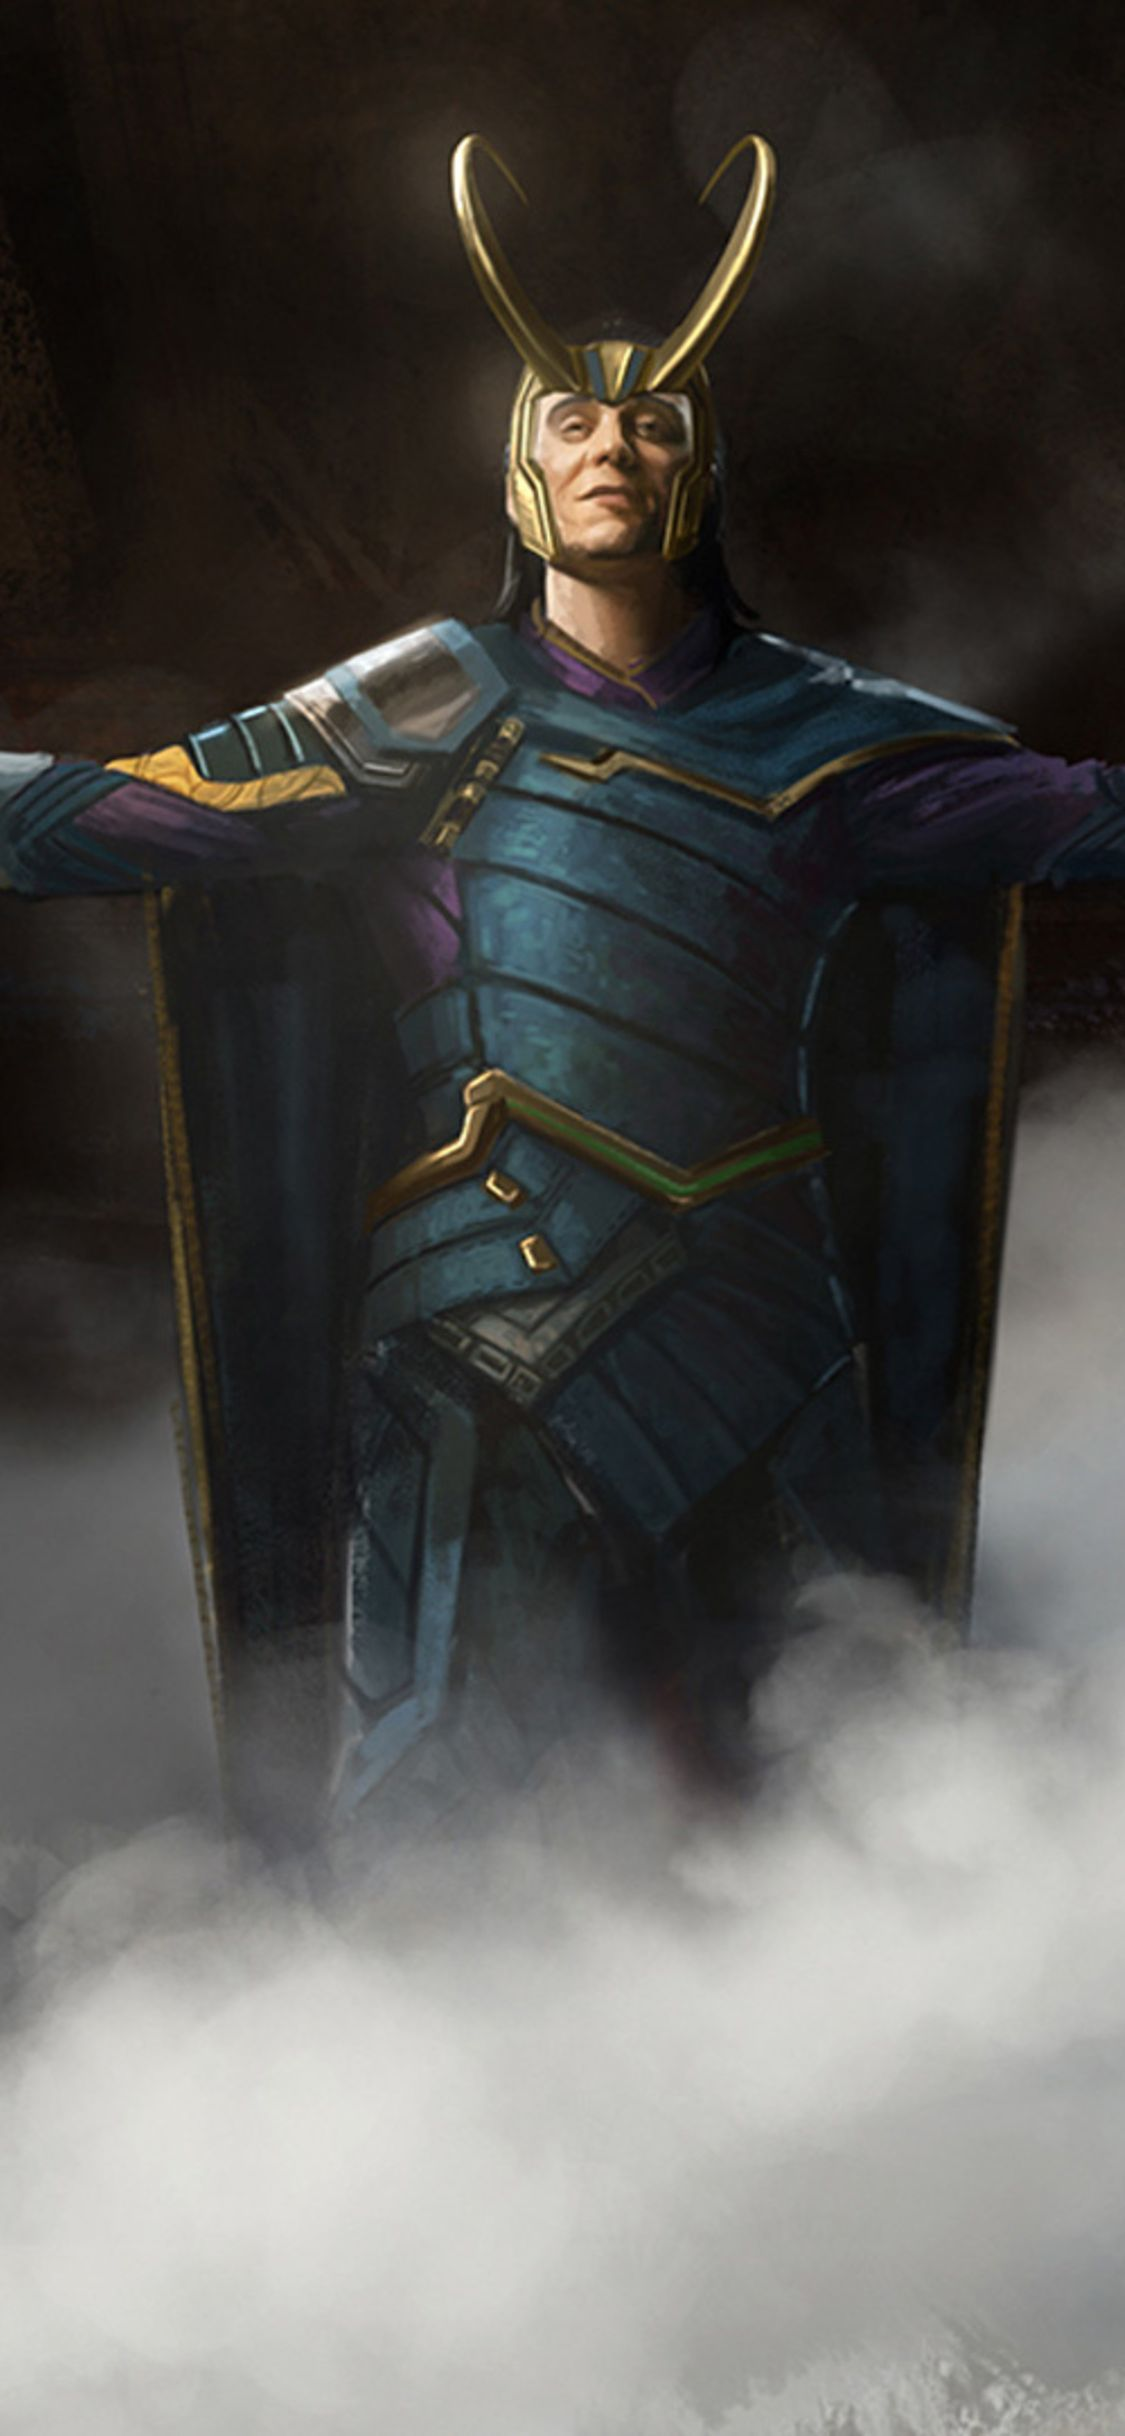 Loki Wallpaper For Mobile Phone Tablet Desktop Computer And Other Devices Hd And 4k Wallpapers In 2021 Loki Wallpaper Loki Loki Art